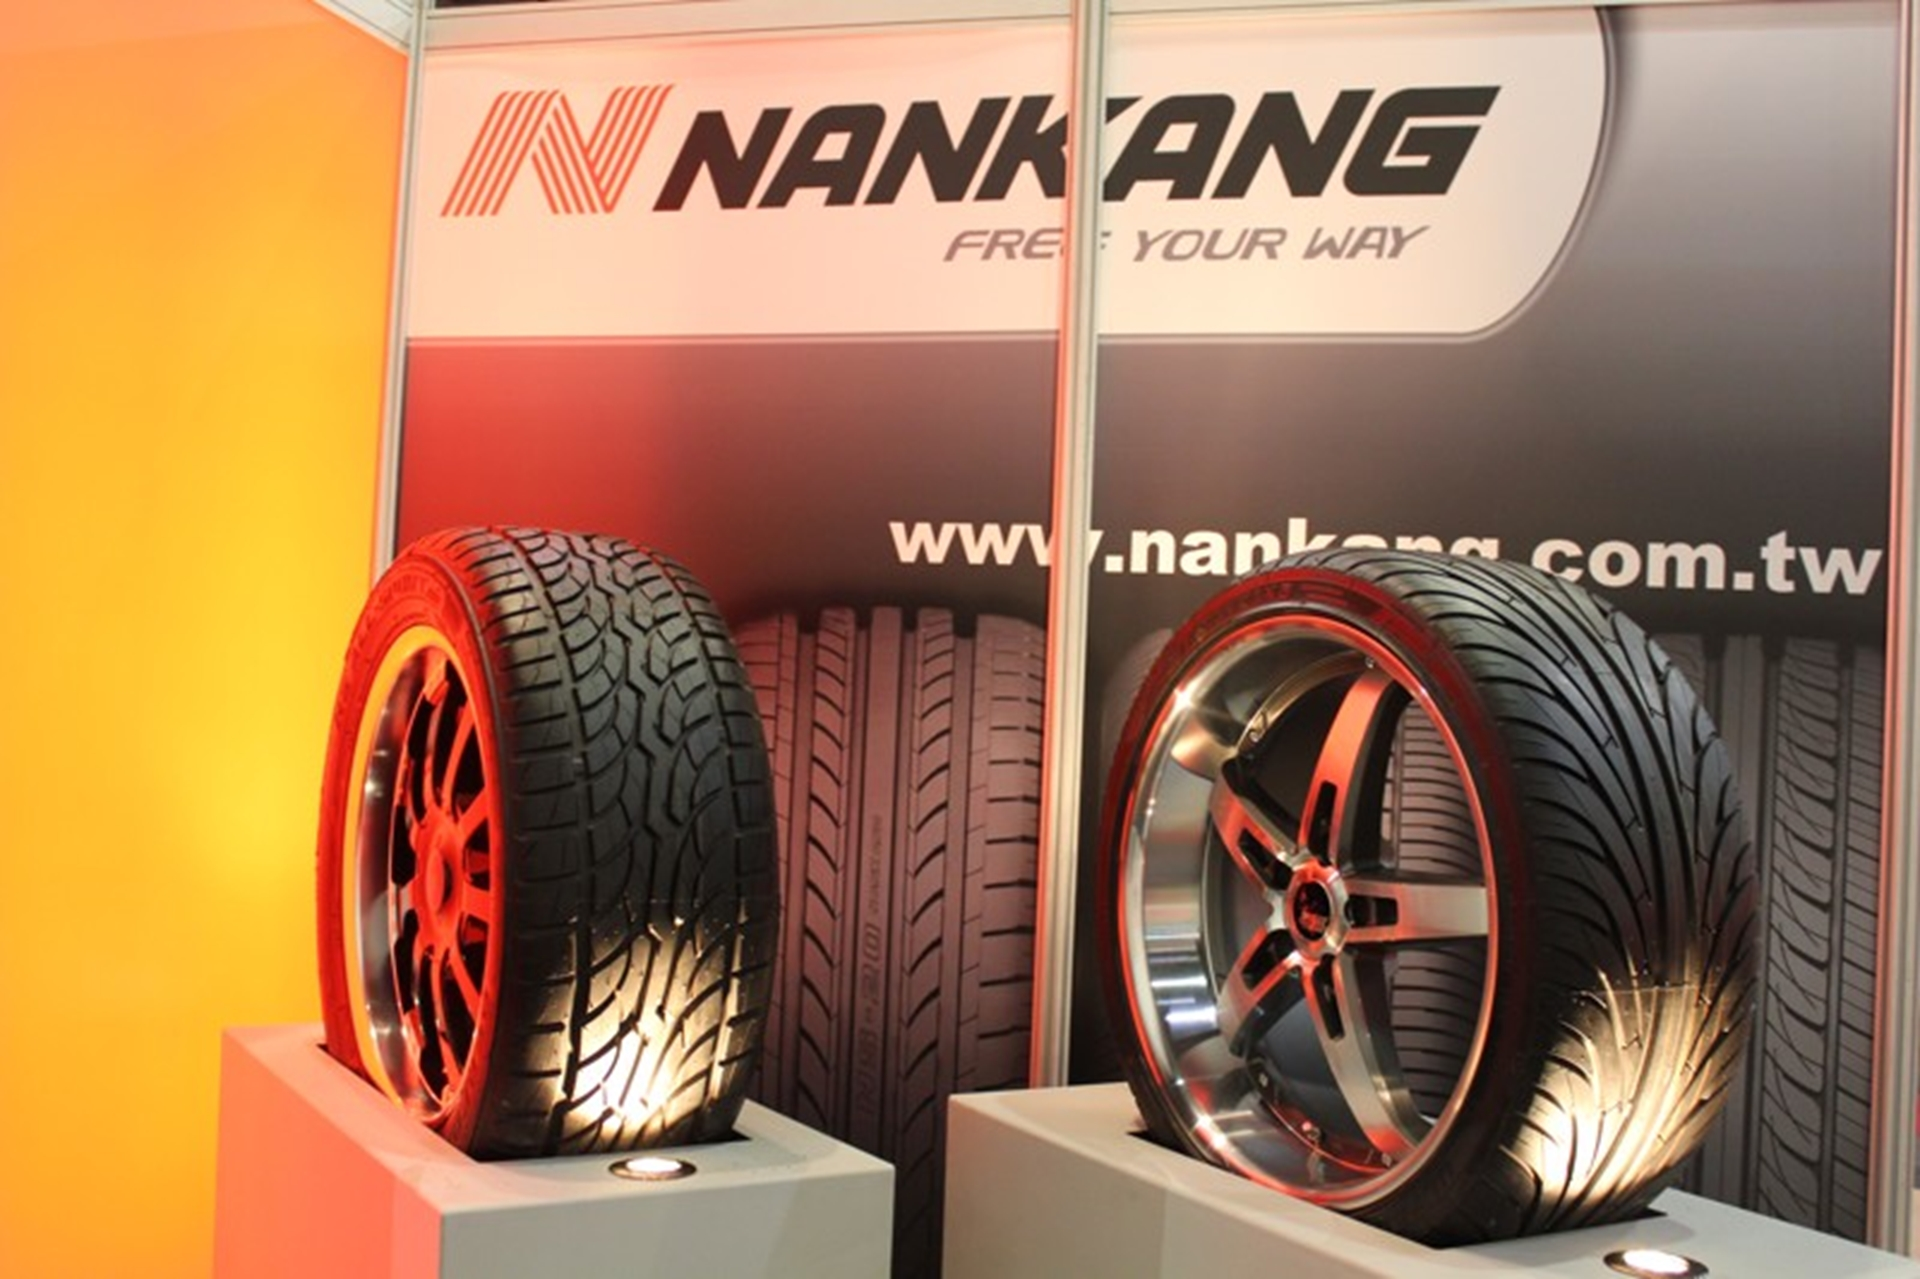 Tyre Expo South Africa